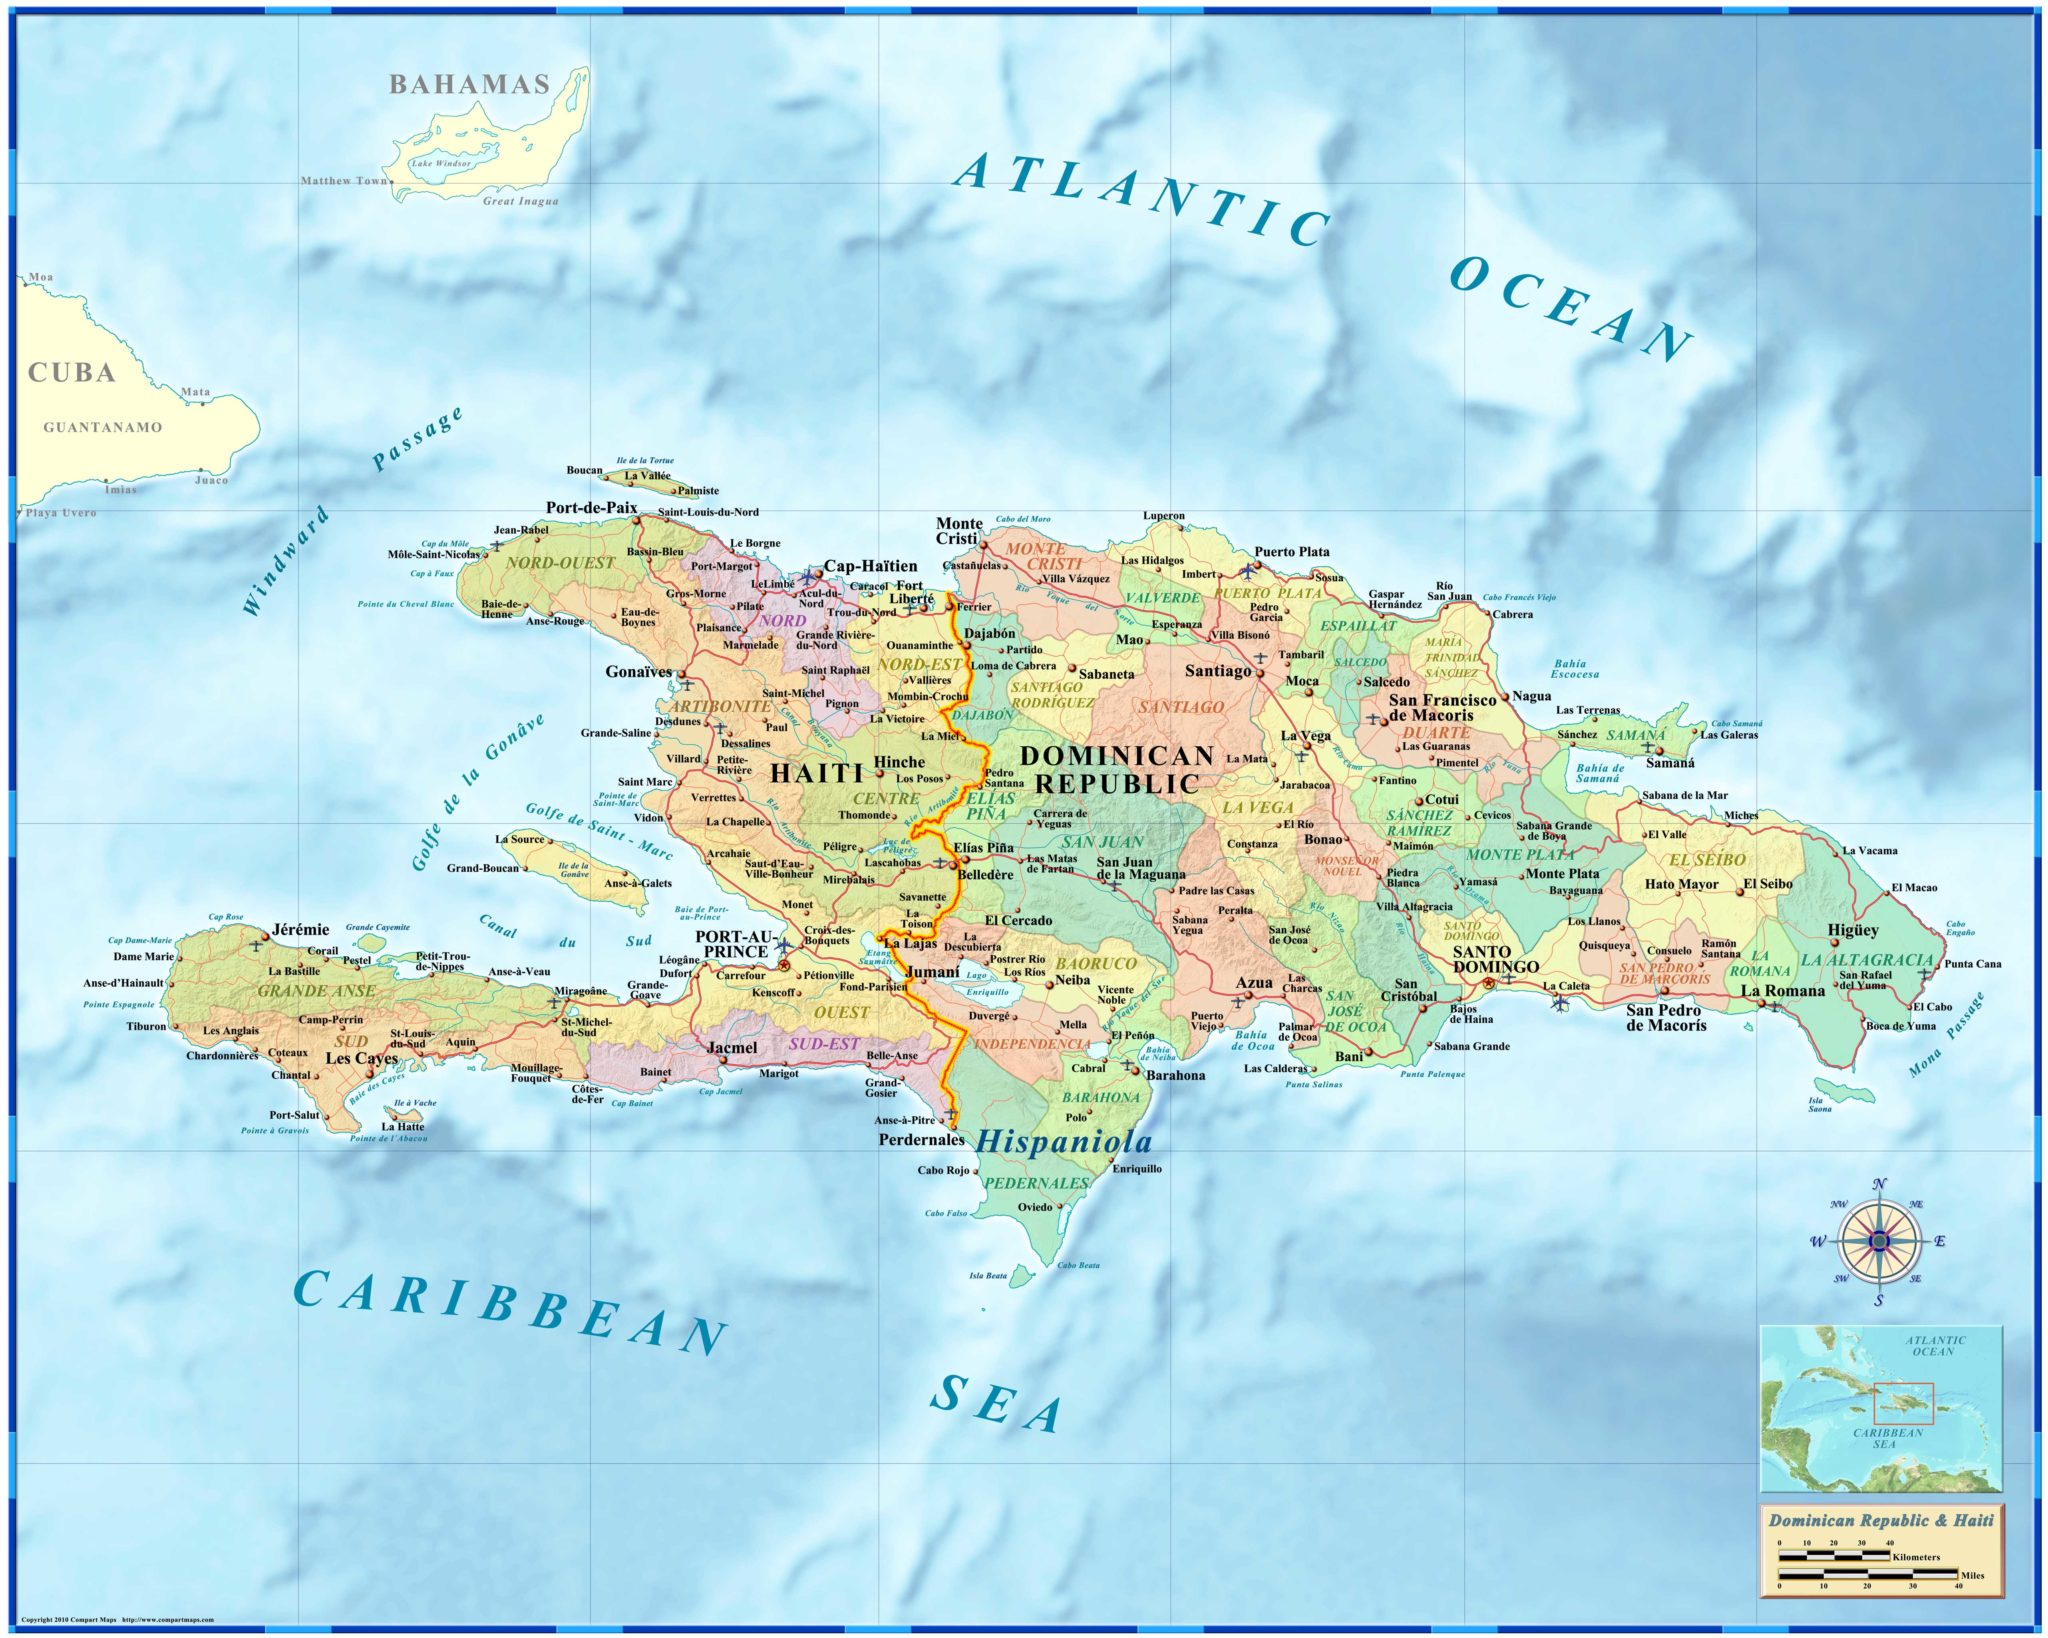 Haiti / Dominican Republic Wall Map on cancun world map, grenada world map, indonesia world map, cuba world map, ecuador world map, guatemala world map, haiti world map, jamaica world map, aruba world map, panama world map, peru world map, bahamas world map, honduras world map, philippines world map, portugal world map, caribbean map, mexico world map, st. lucia world map, samoa world map,